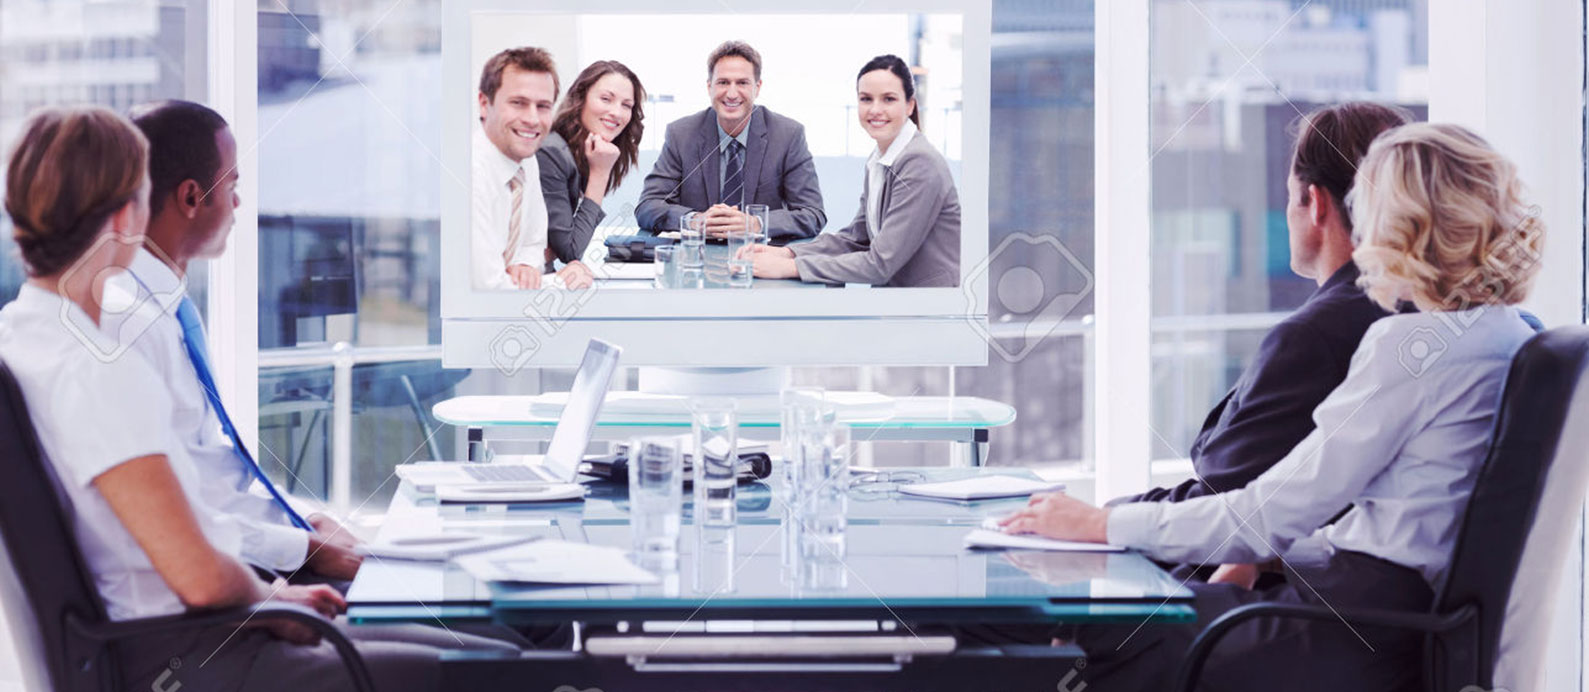 Group-of-business-people-looking-at-a-screen